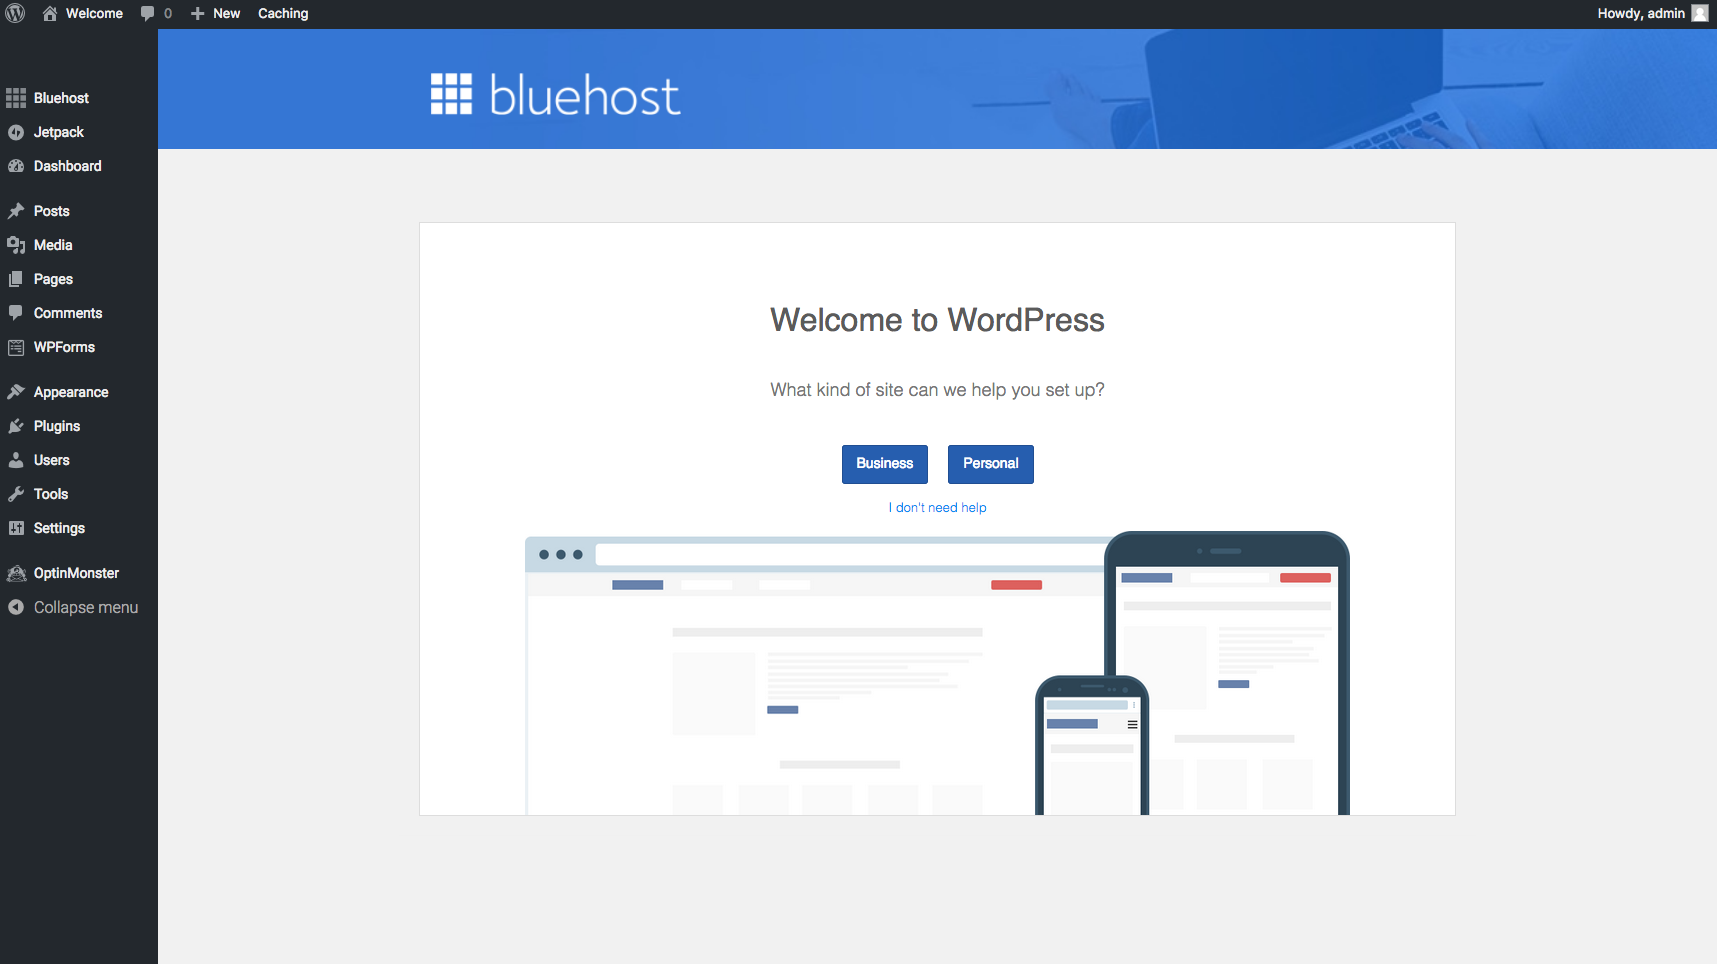 wordpress welcome bluehost